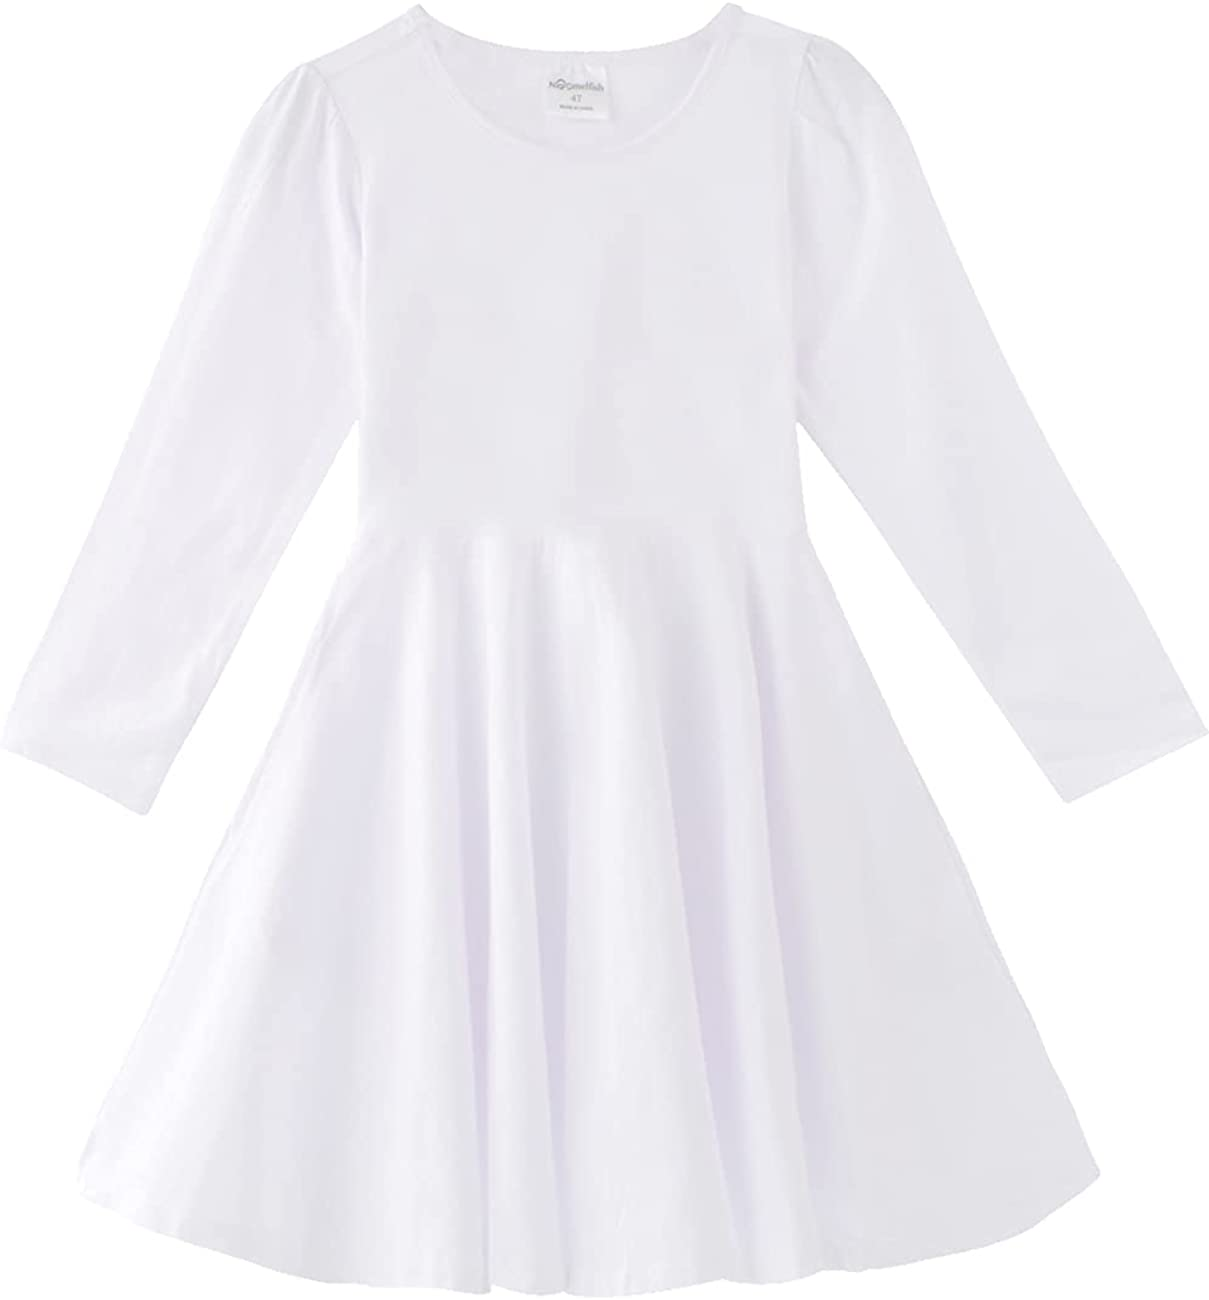 Noomelfish Girls Long Puff Sleeve Swing Dress Casual Cotton Twirly Skater Dresses with Pockets (2-12 Years)